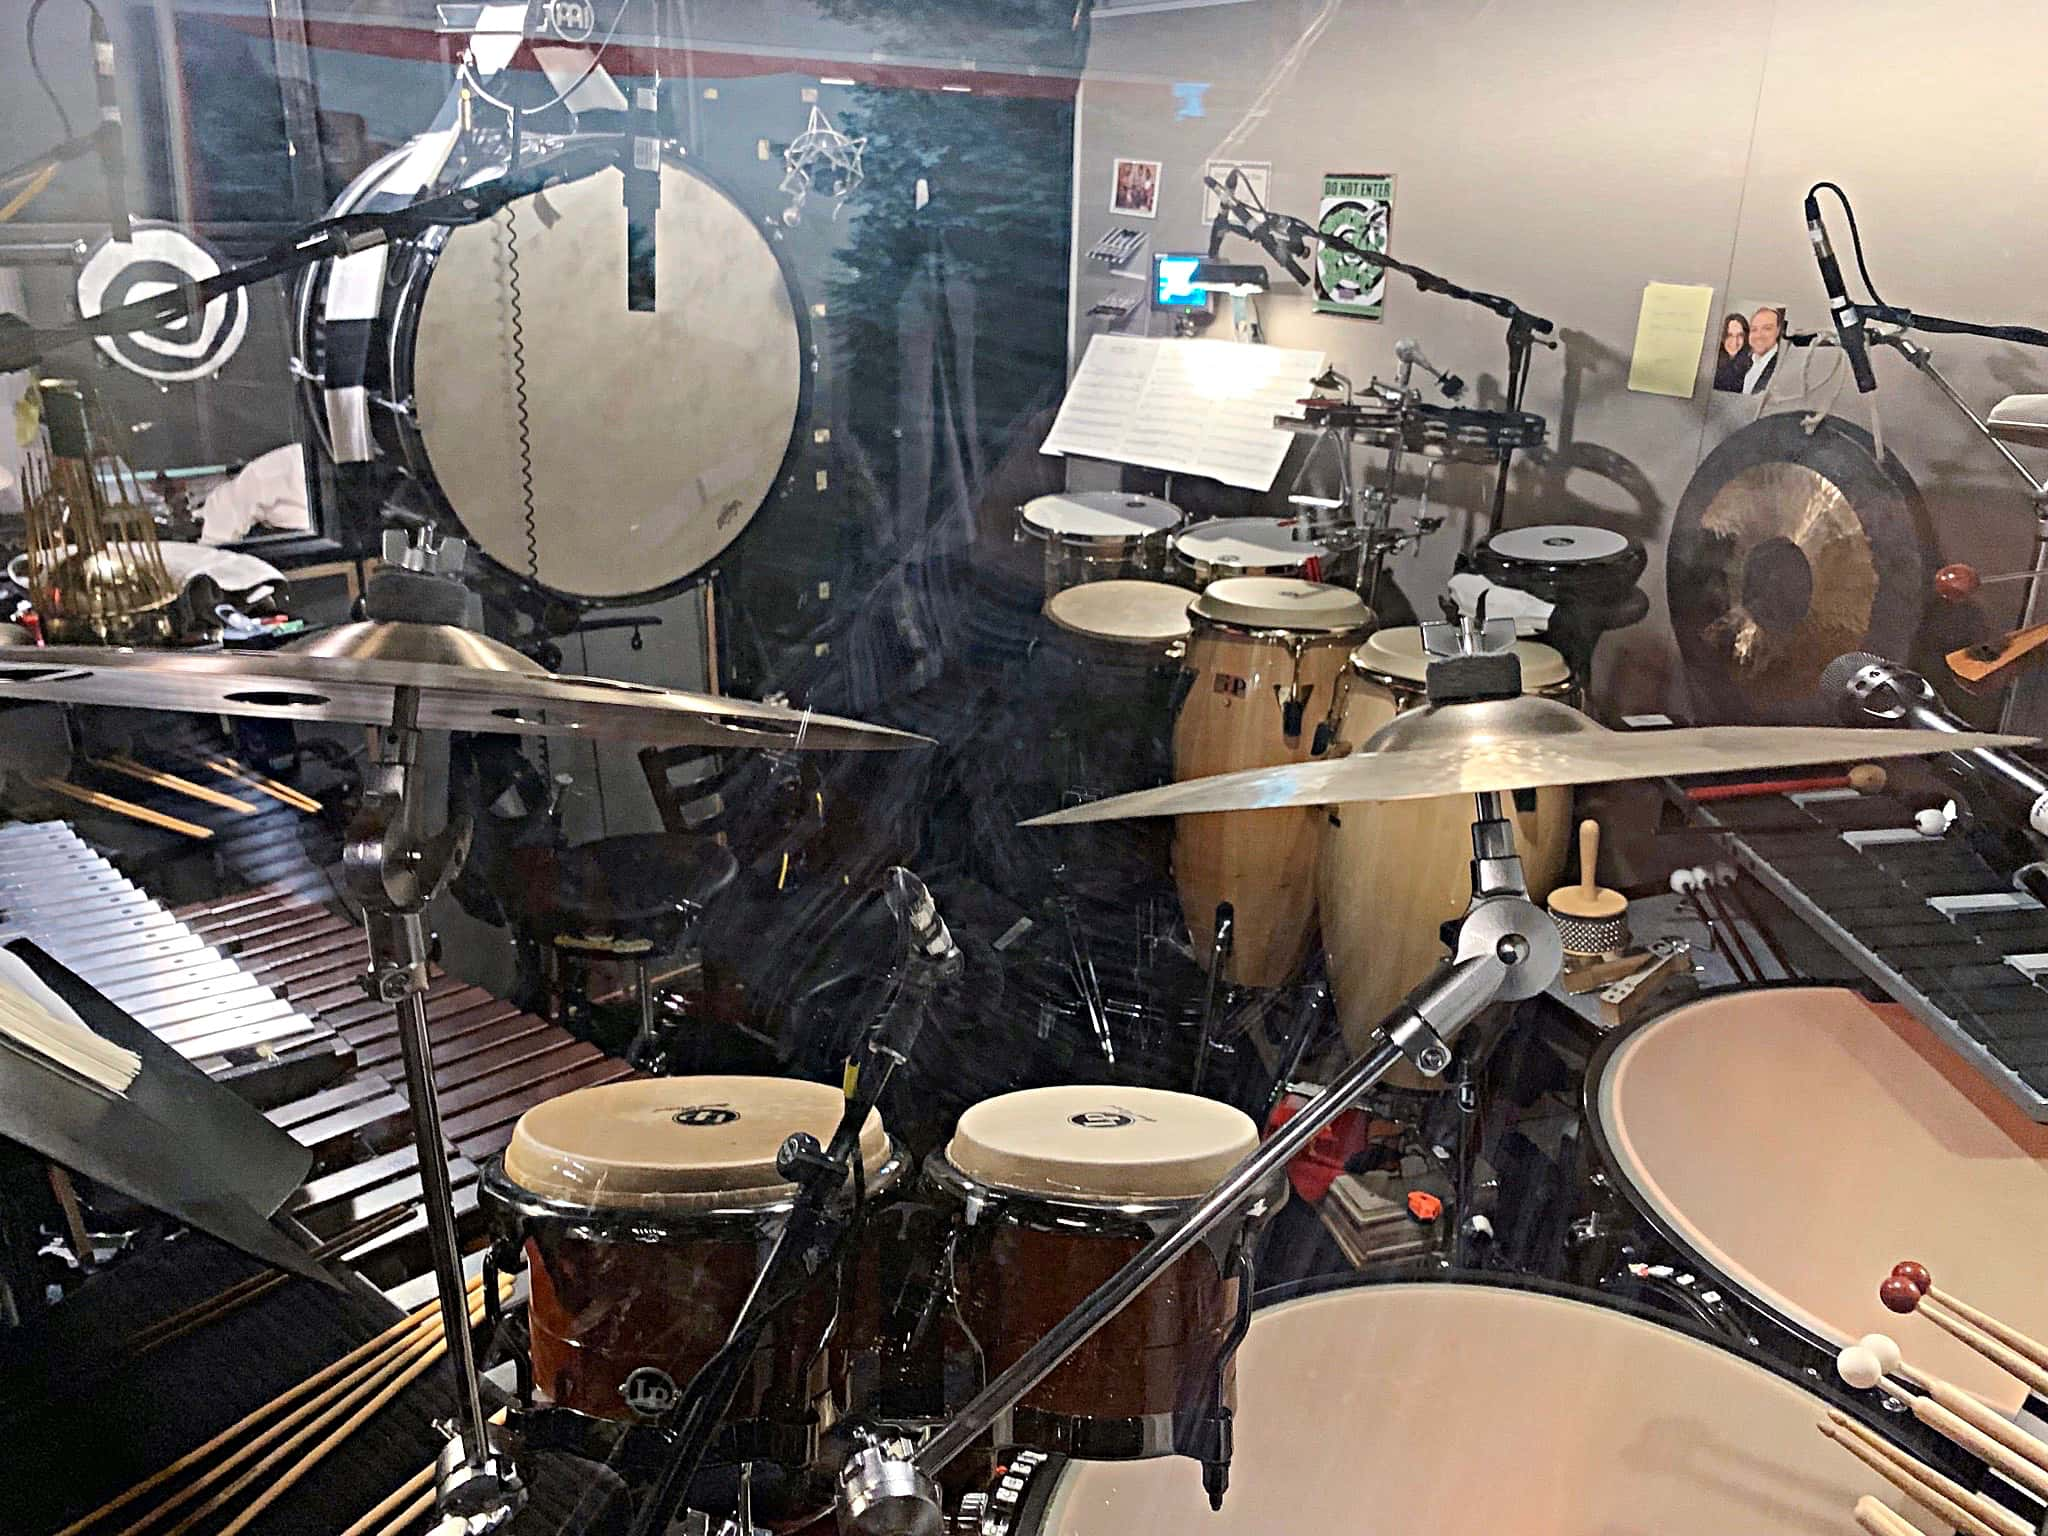 Joshua Mark Samuels' percussion setup for the 2109-2020 Broadway production of Beetlejuice at the Winter Garden Theatre.